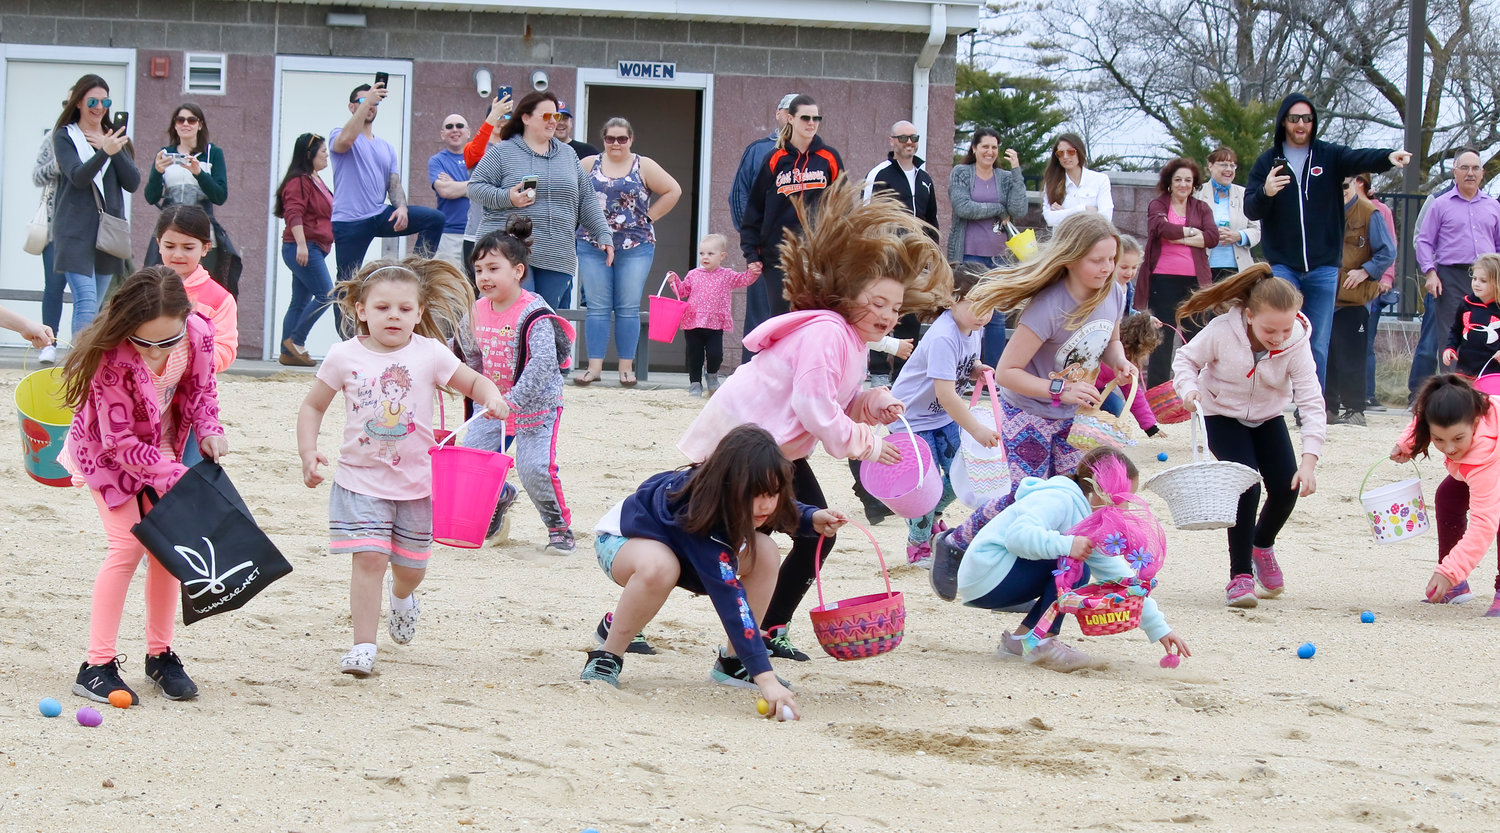 Nearly 200 children ran to grab the 2,000 eggs scattered along the beach front at the annual Hewlett Point Beach egg hunt hosted by the Cape Cod Homeowners' Association on April 14.